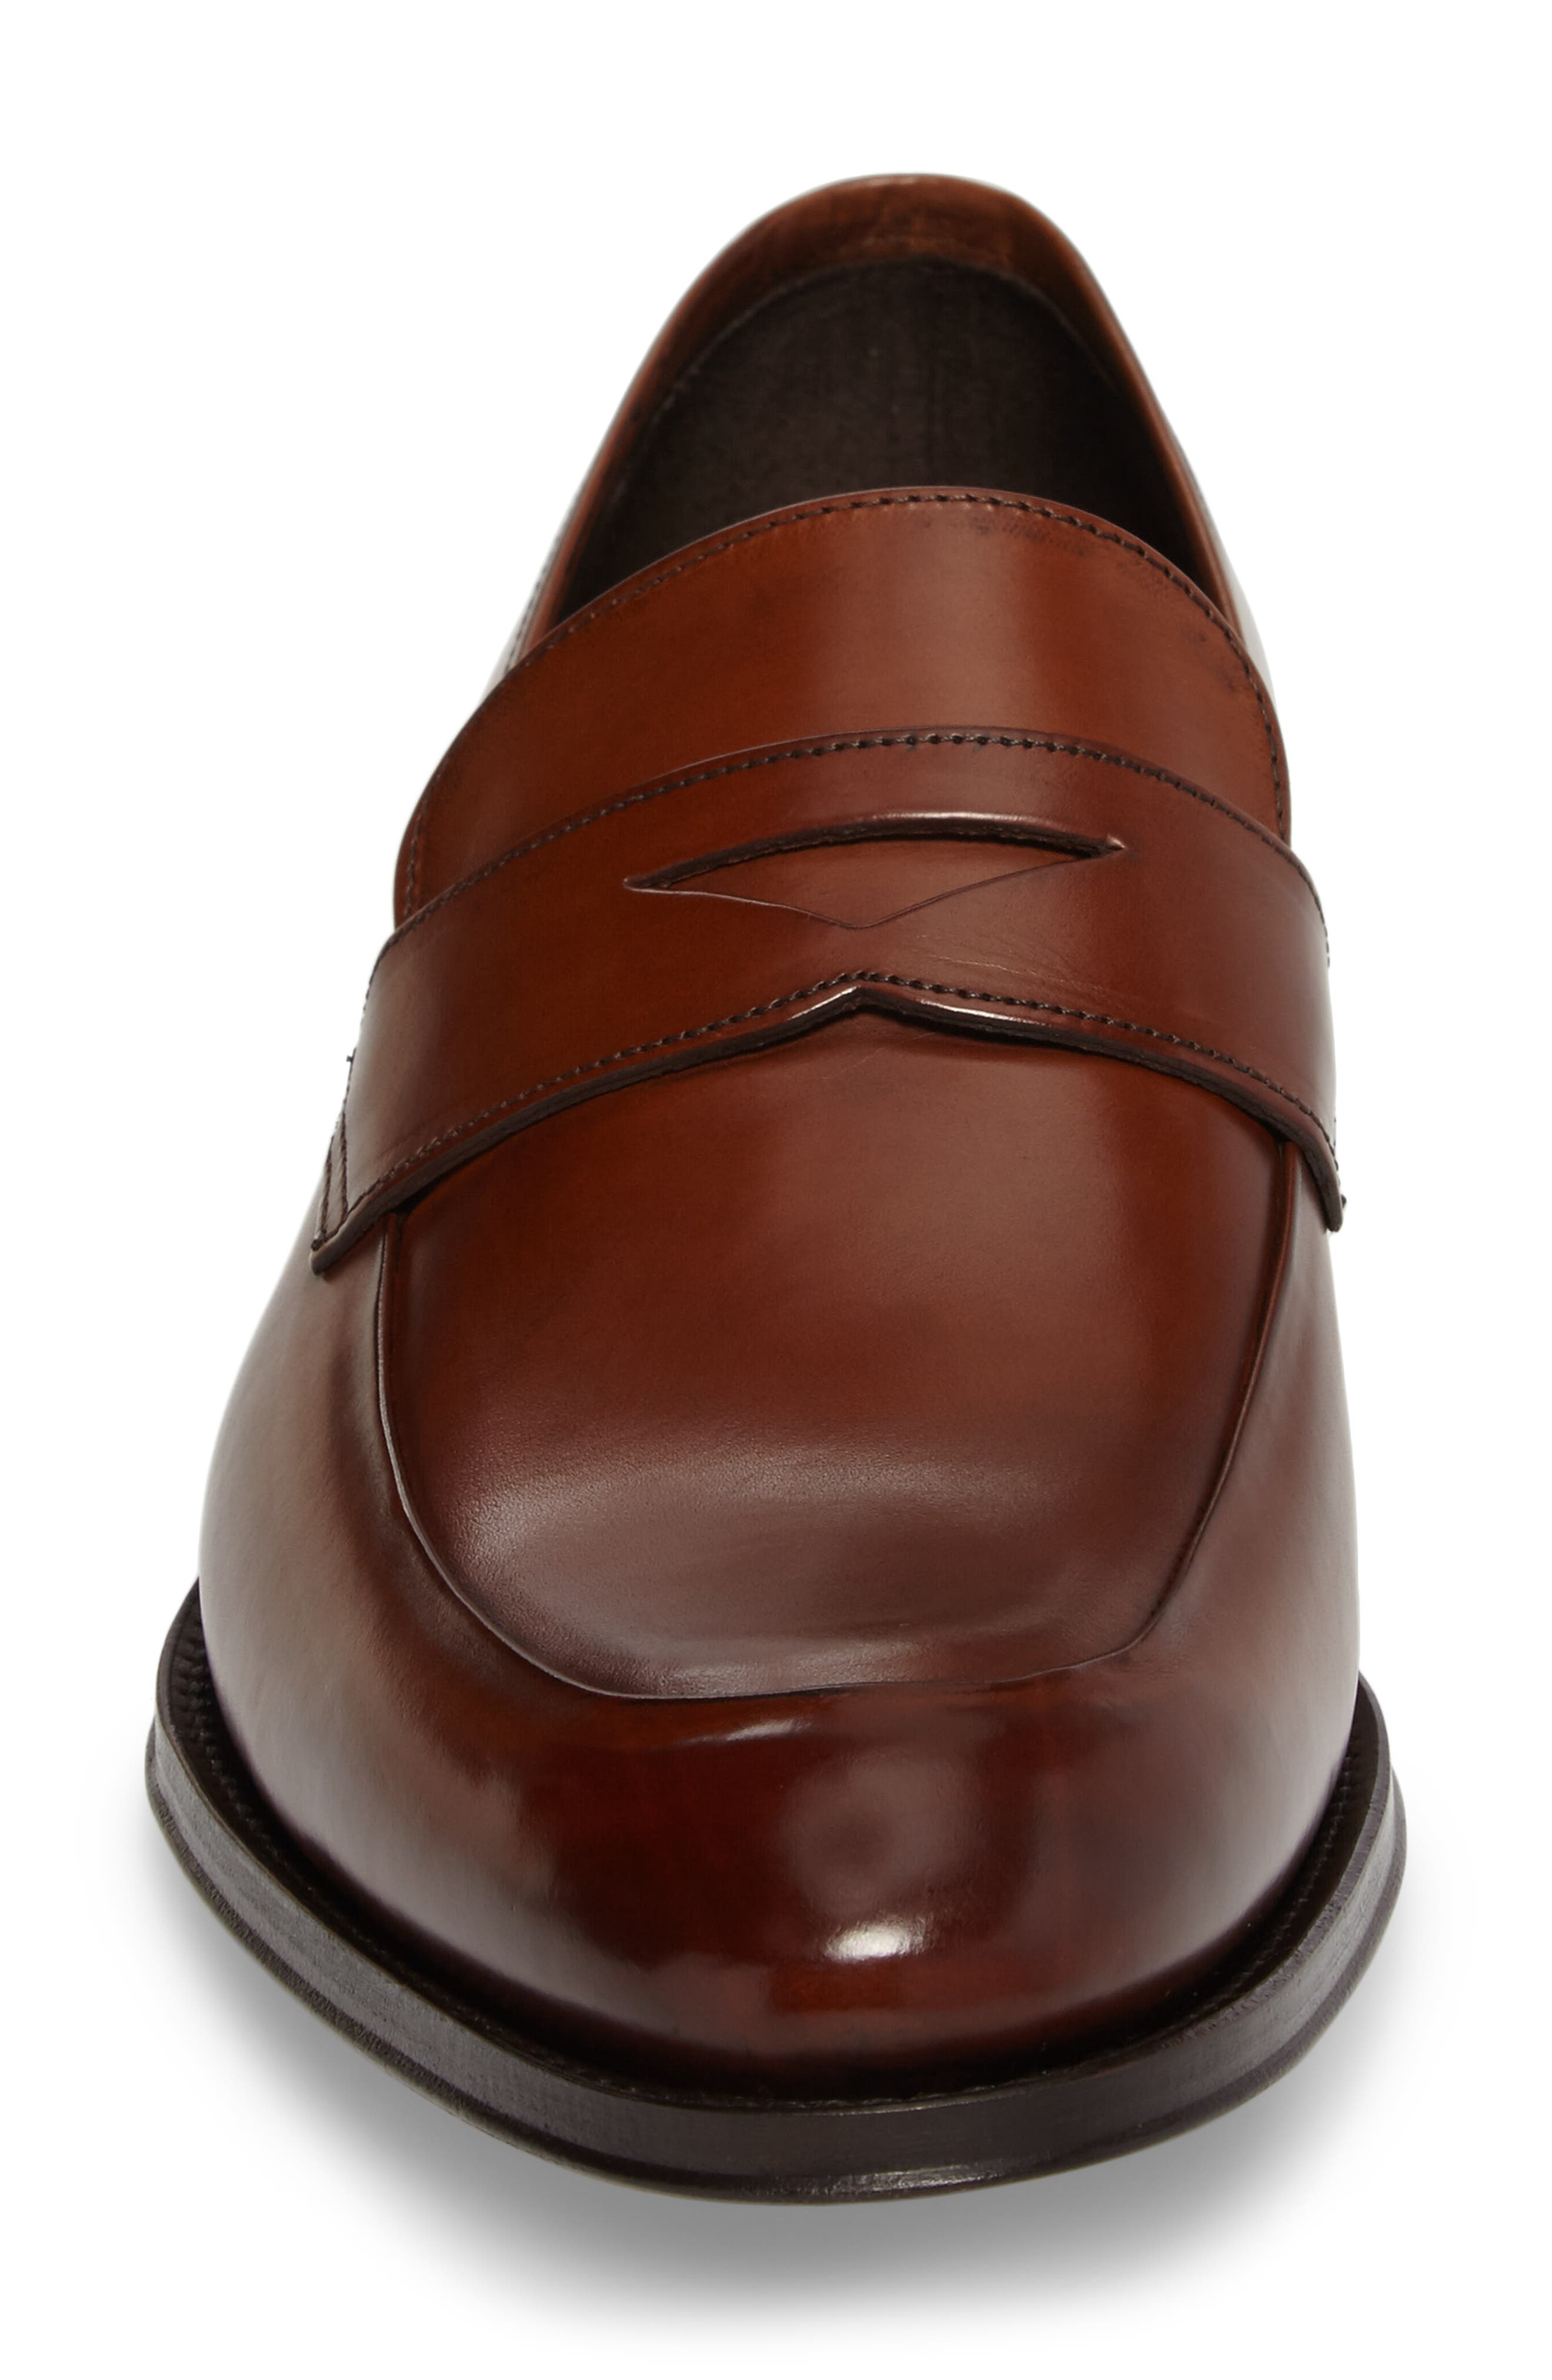 Francis Penny Loafer,                             Alternate thumbnail 4, color,                             Brown Leather